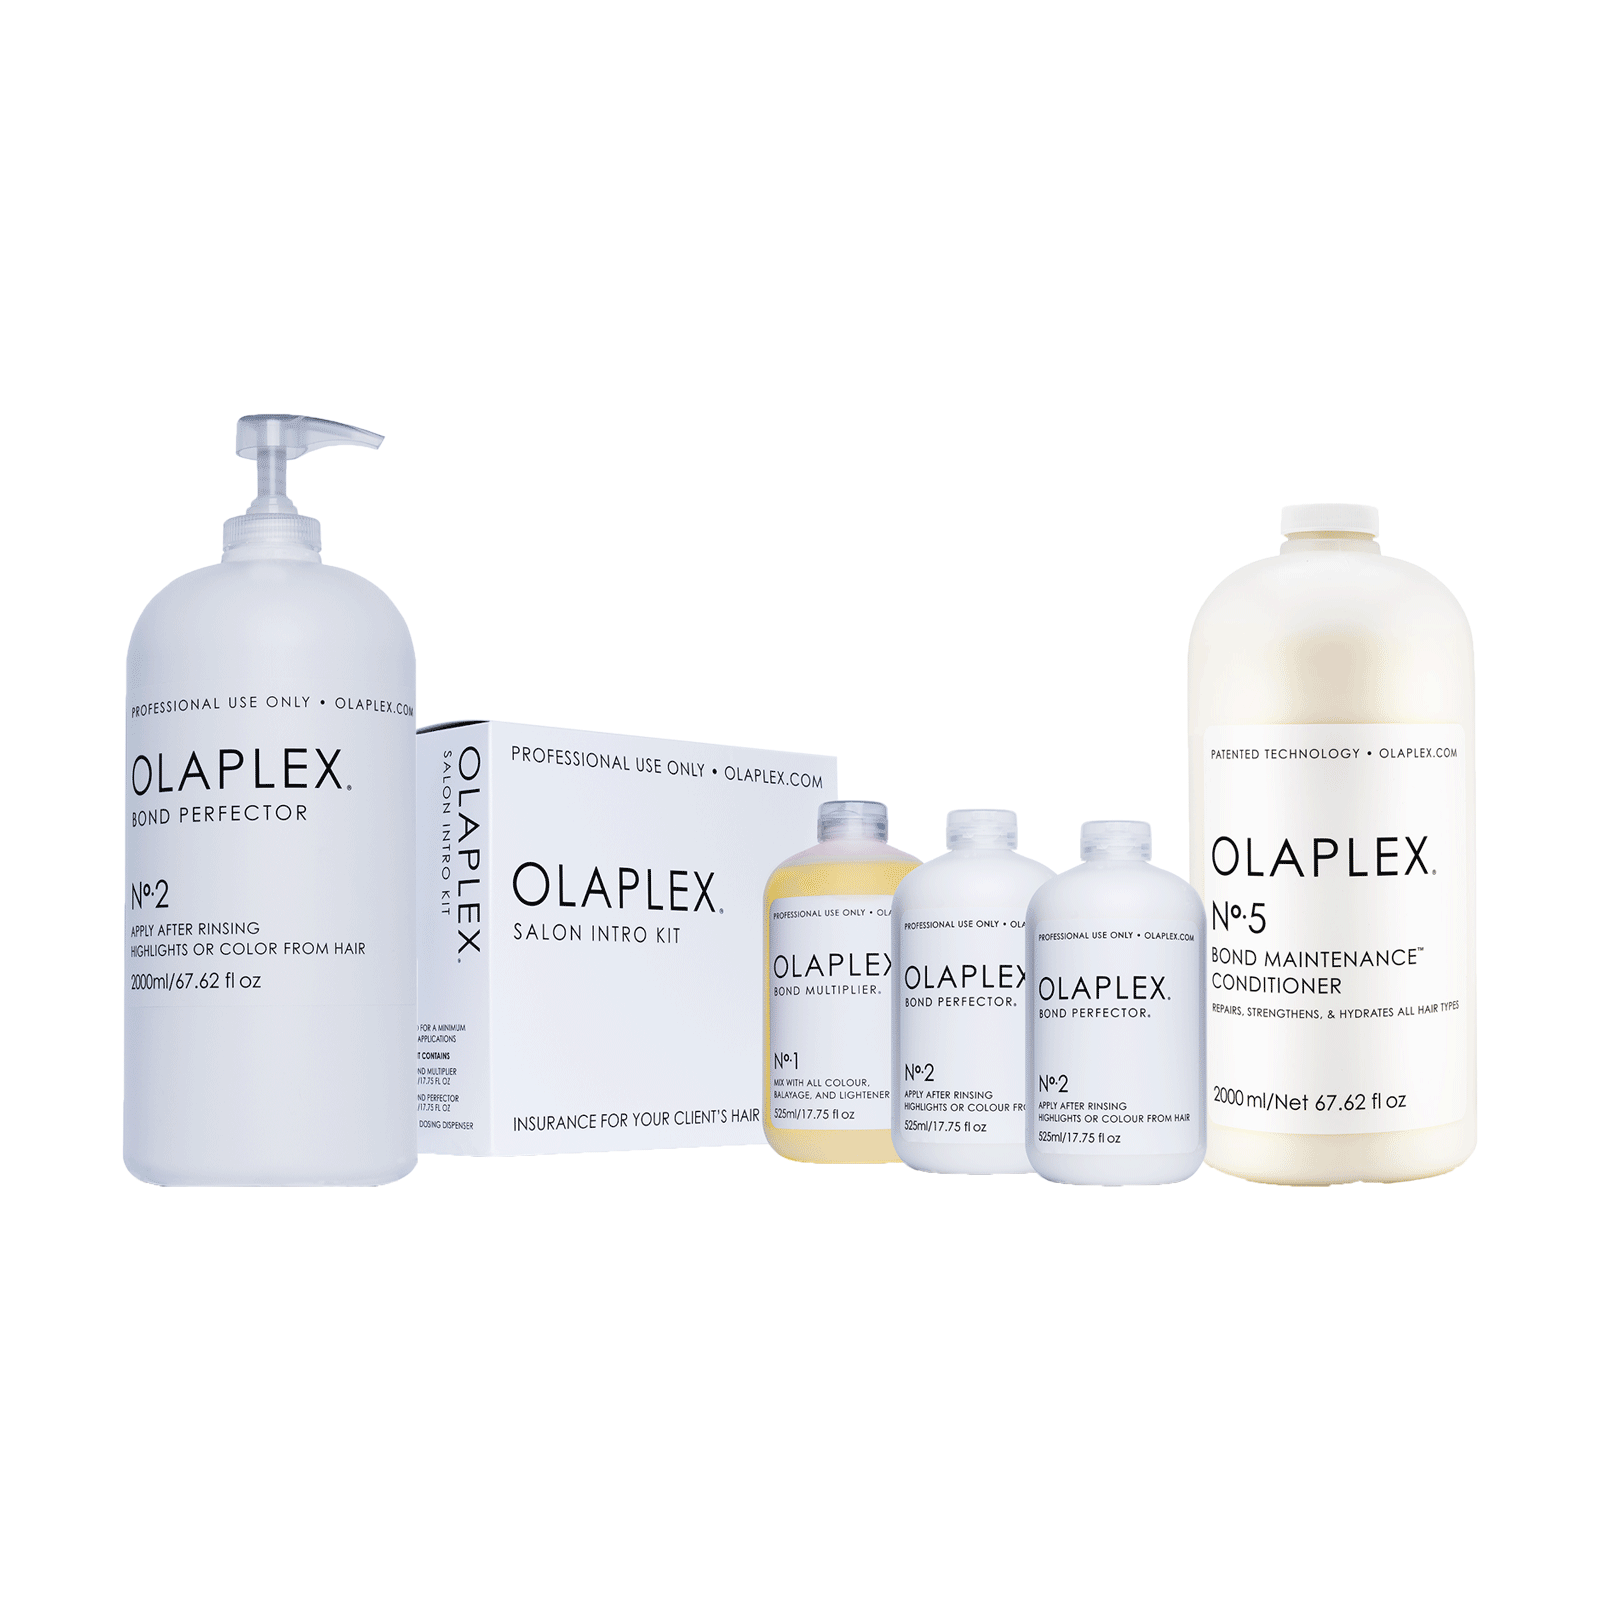 Olaplex Stylist Kit, Large Kit, Bond Perfector, Conditioner